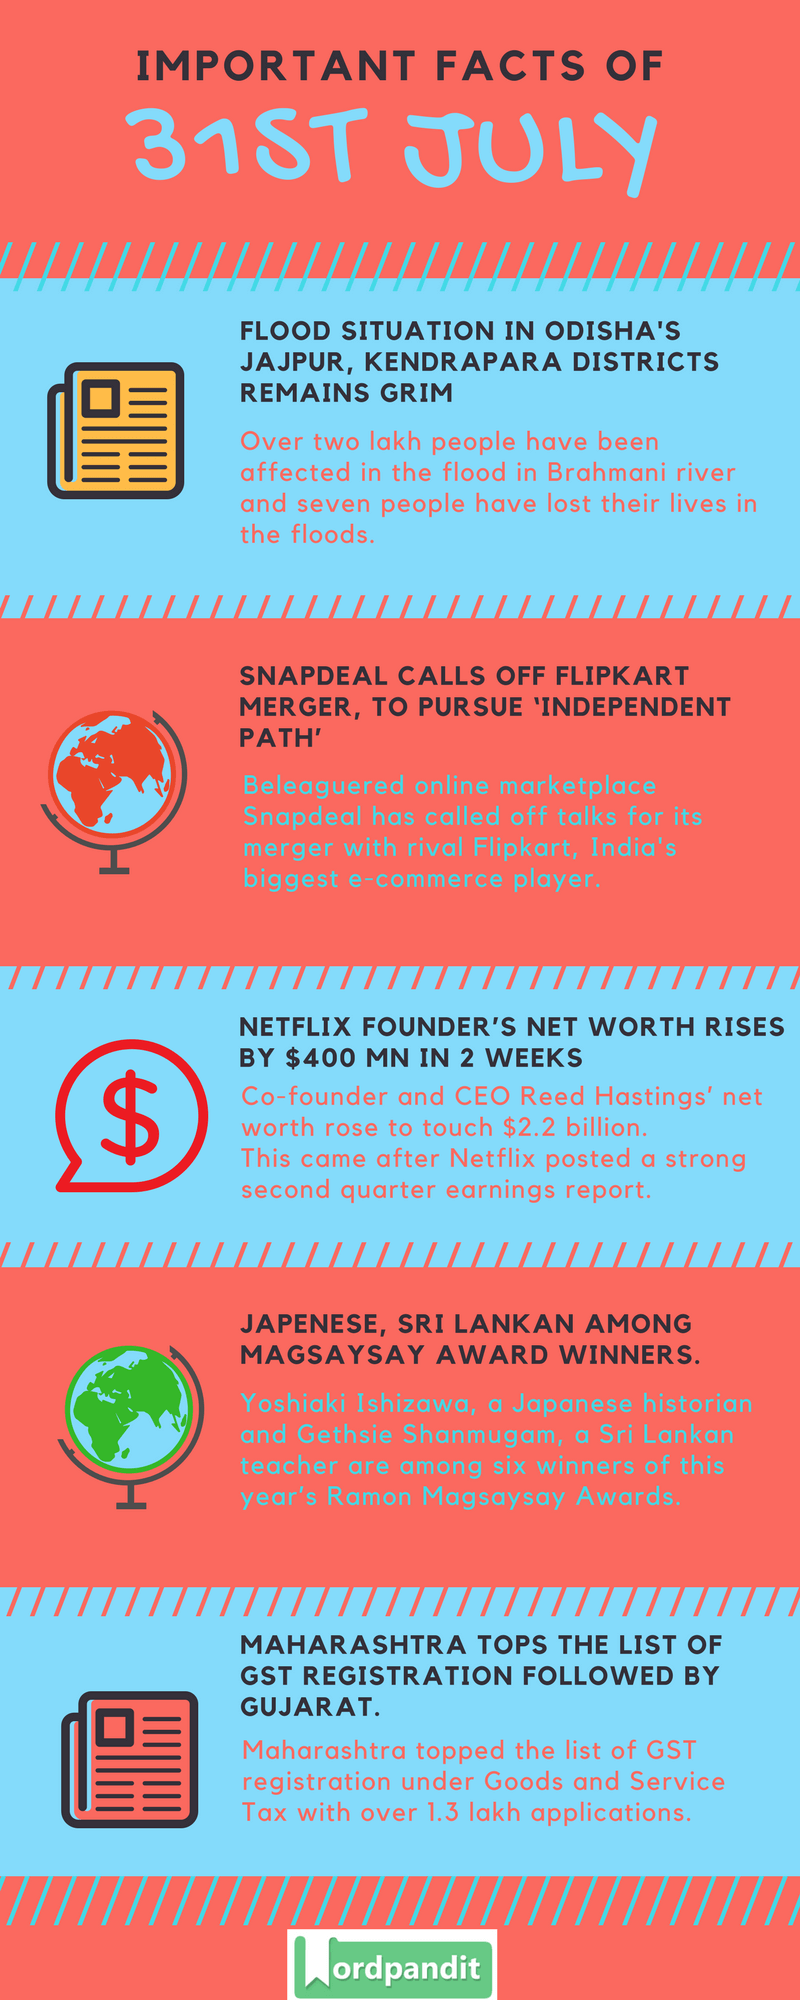 Daily-Current-Affairs-31-july-2017-Current-Affairs-Quiz-july-31-2017-Current-Affairs-Infographic